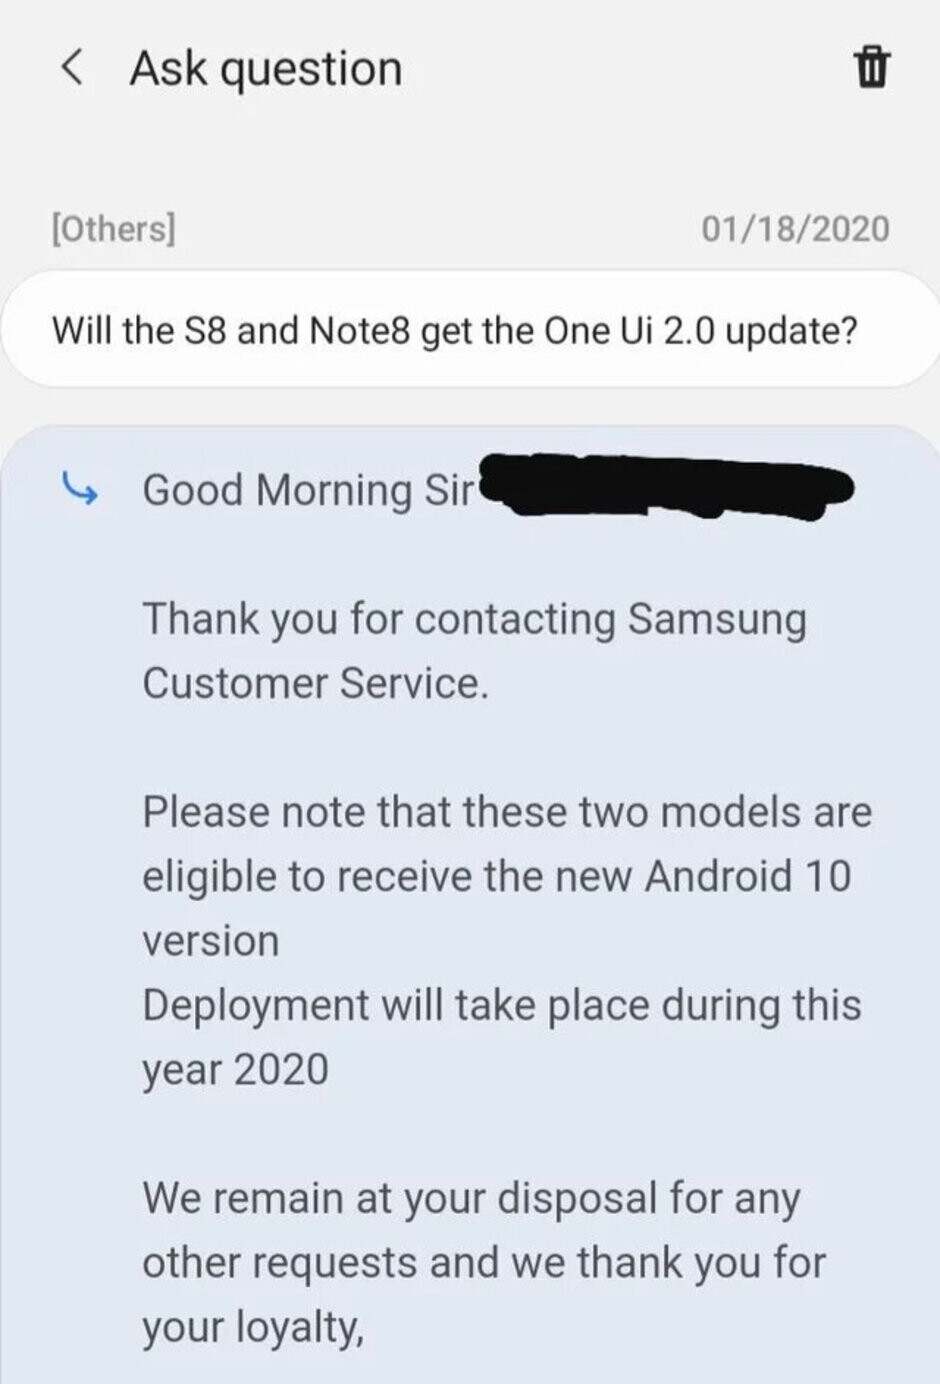 Samsung reps insist Galaxy S8 and Note 8 will receive Android 10 updates